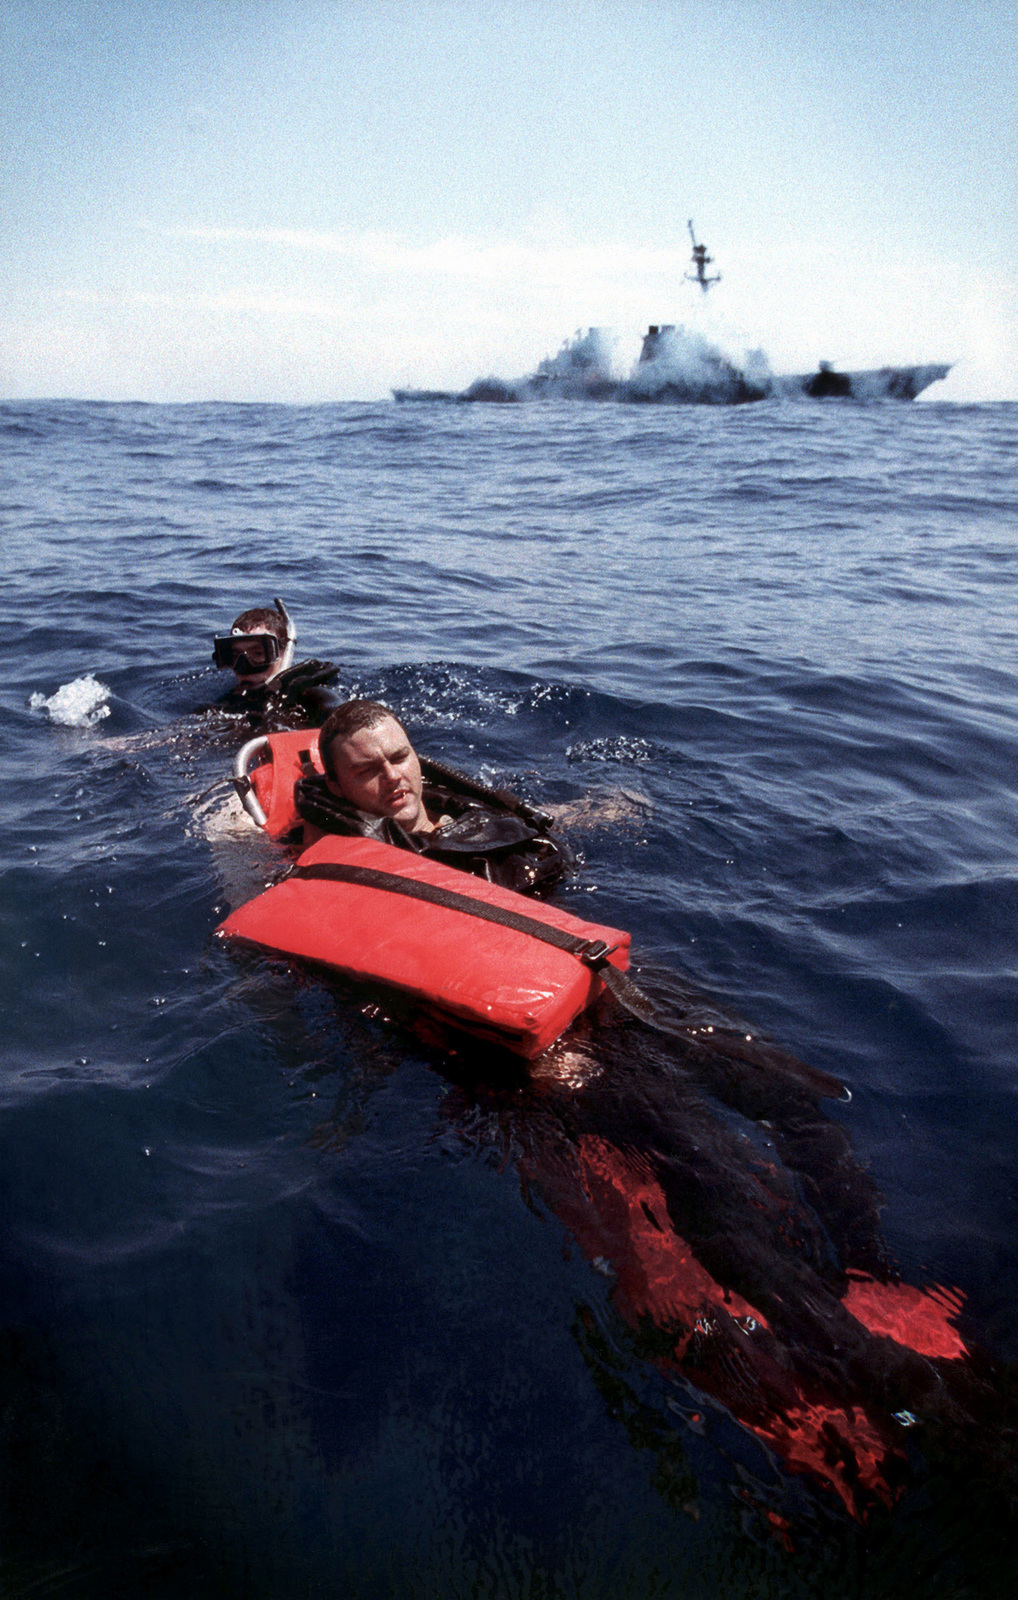 """Military Photographer of the Year Winner 1999 TITLE: """"Search and Rescue"""" CATEGORY: Portfolio PLACE: Third Place Portfolio CAPTION INFORMATION: USS Barry DDG 52, homeport Norfolk, Virginia, August 3, 1999. Search and rescue swimmer OS2 J.P. Powell practices strapping BM3 Henry Taylor to a stretcher and pulling him to safety, during a man overboard drill. Such drills are frequent due to the resent loss of a crewman on one of the Norfolk based aircraft carriers. IMAGE FILE #DD-SP-01-00055"""